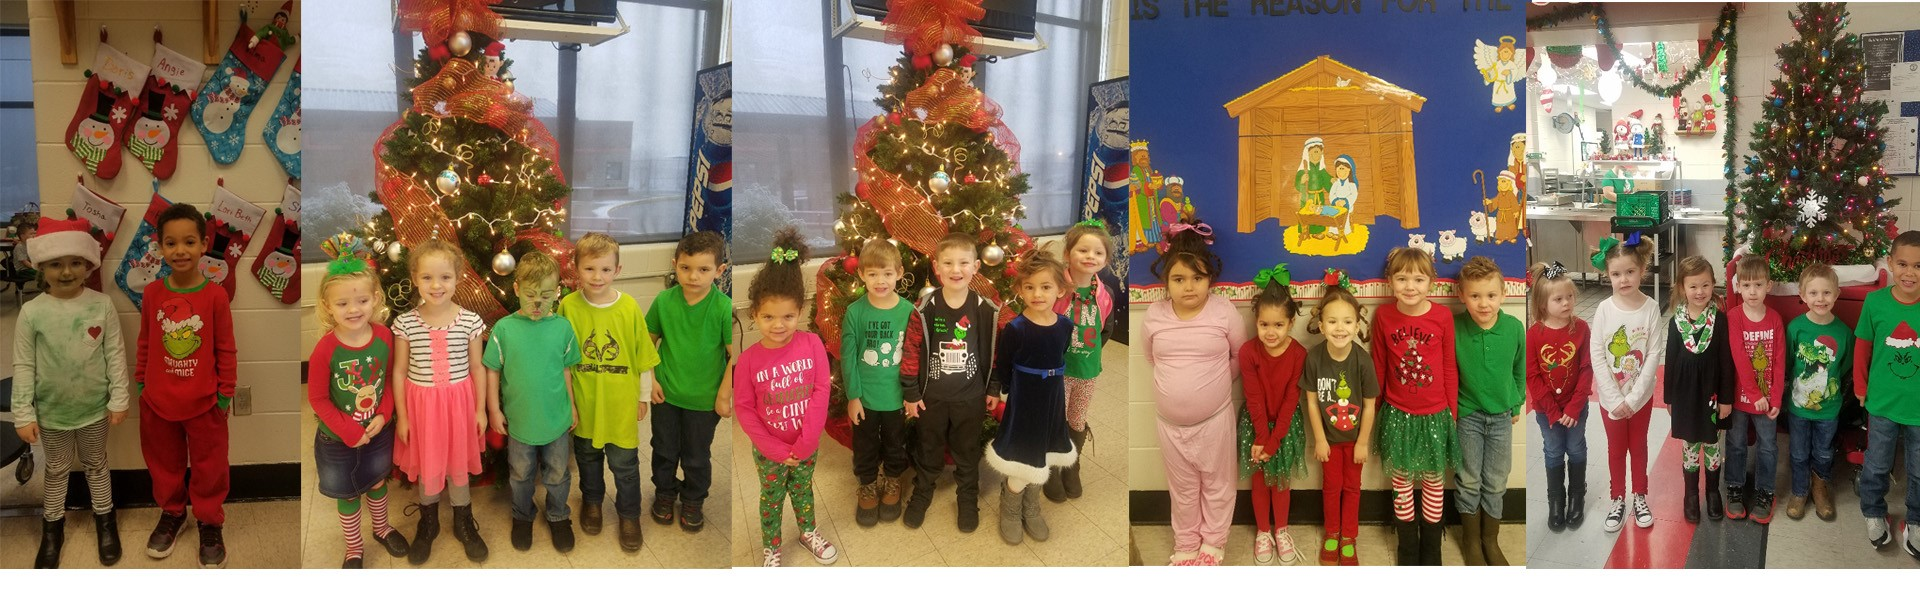 Today at WCCP our Preschool had Grinch Day